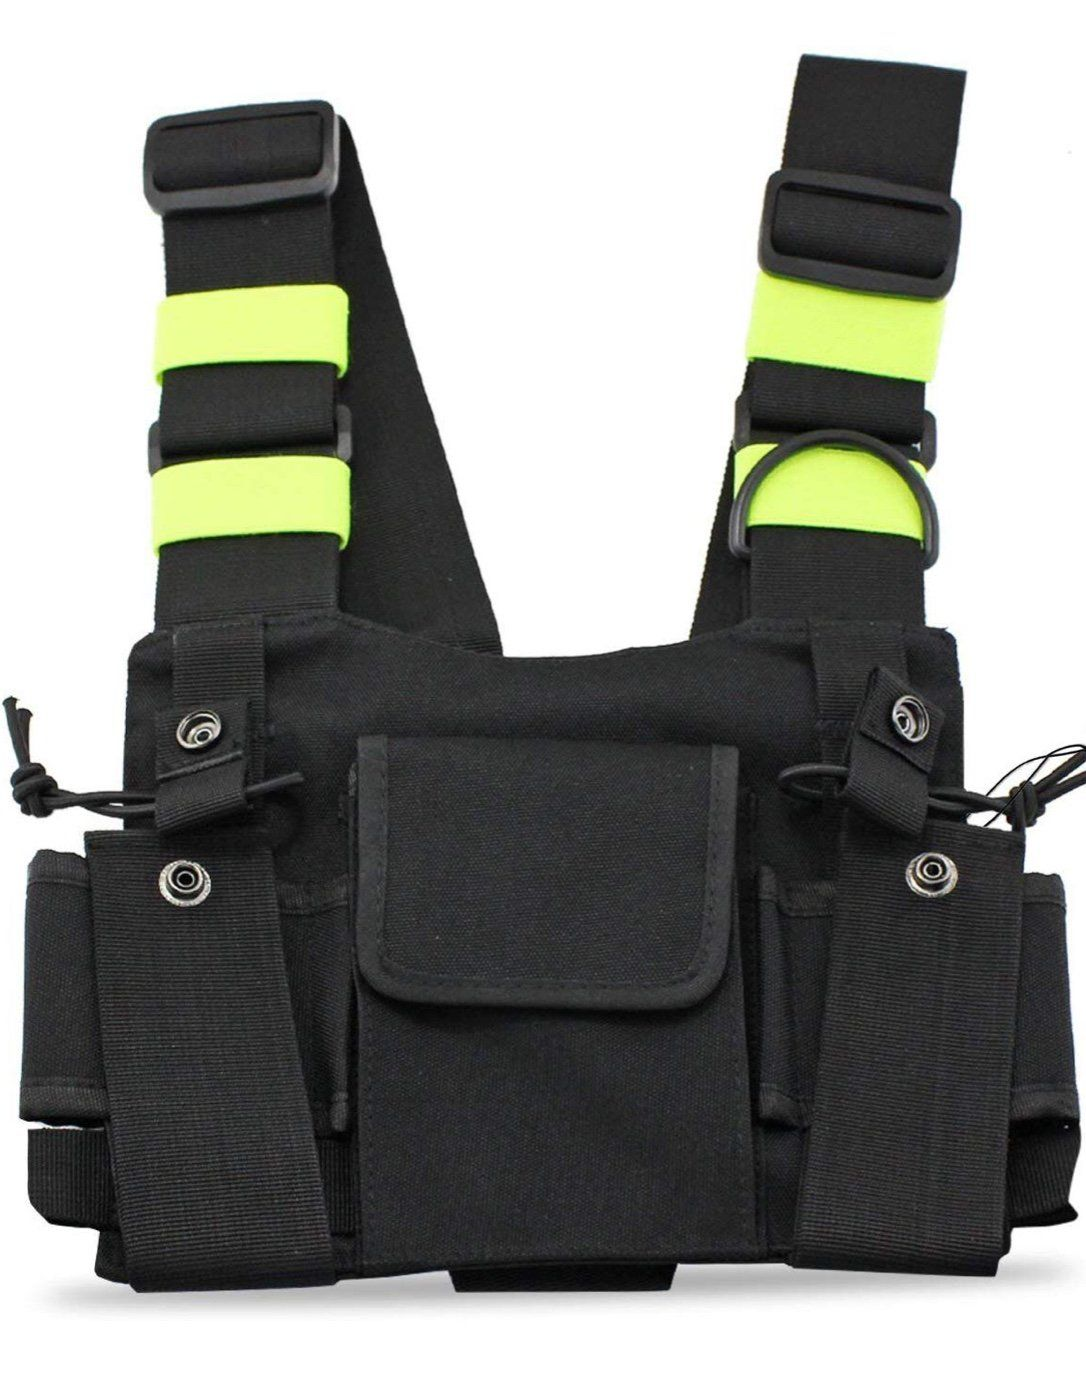 2019 Hip-hop Kanye West Street Ins Hot Style Chest Rig Military Tactical Chest Bag Functional Package Prechest Bag Vest Bag Suitable For Men And Women Of All Ages In All Seasons Luggage & Bags Men's Bags